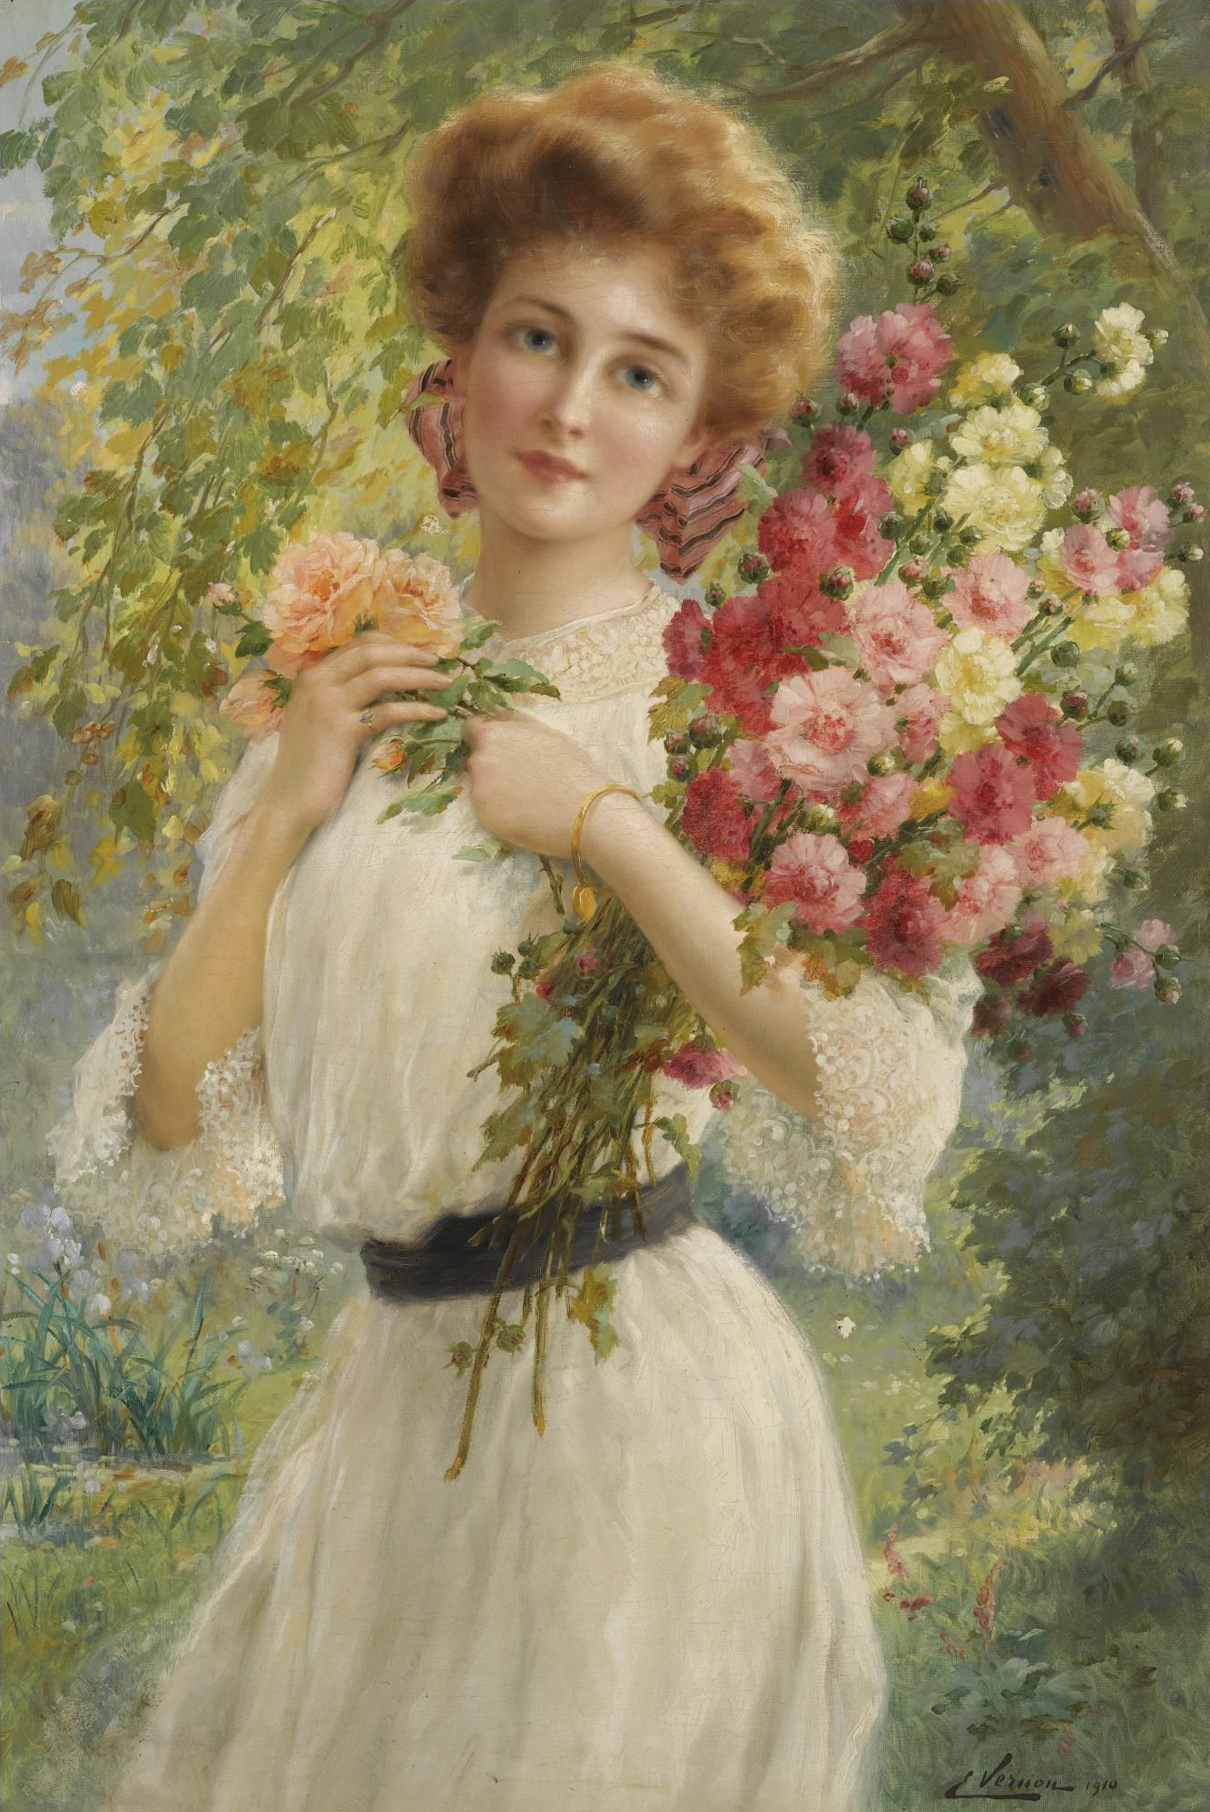 Summer by Emile Vernon - Date unknown